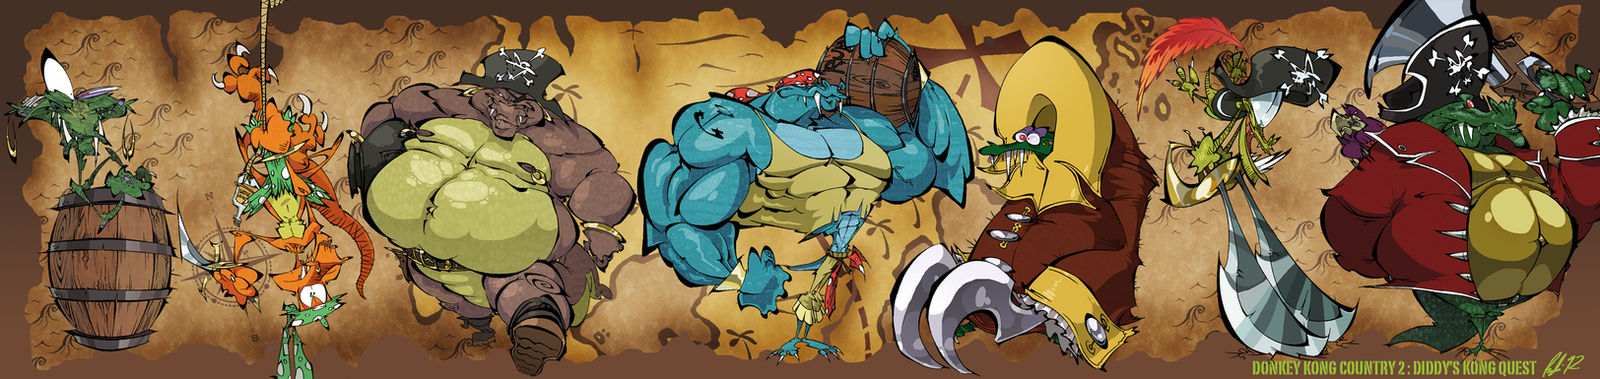 Donkey Kong Country 2 :Diddy's Kong Quest Bookmark by BrendanCorris